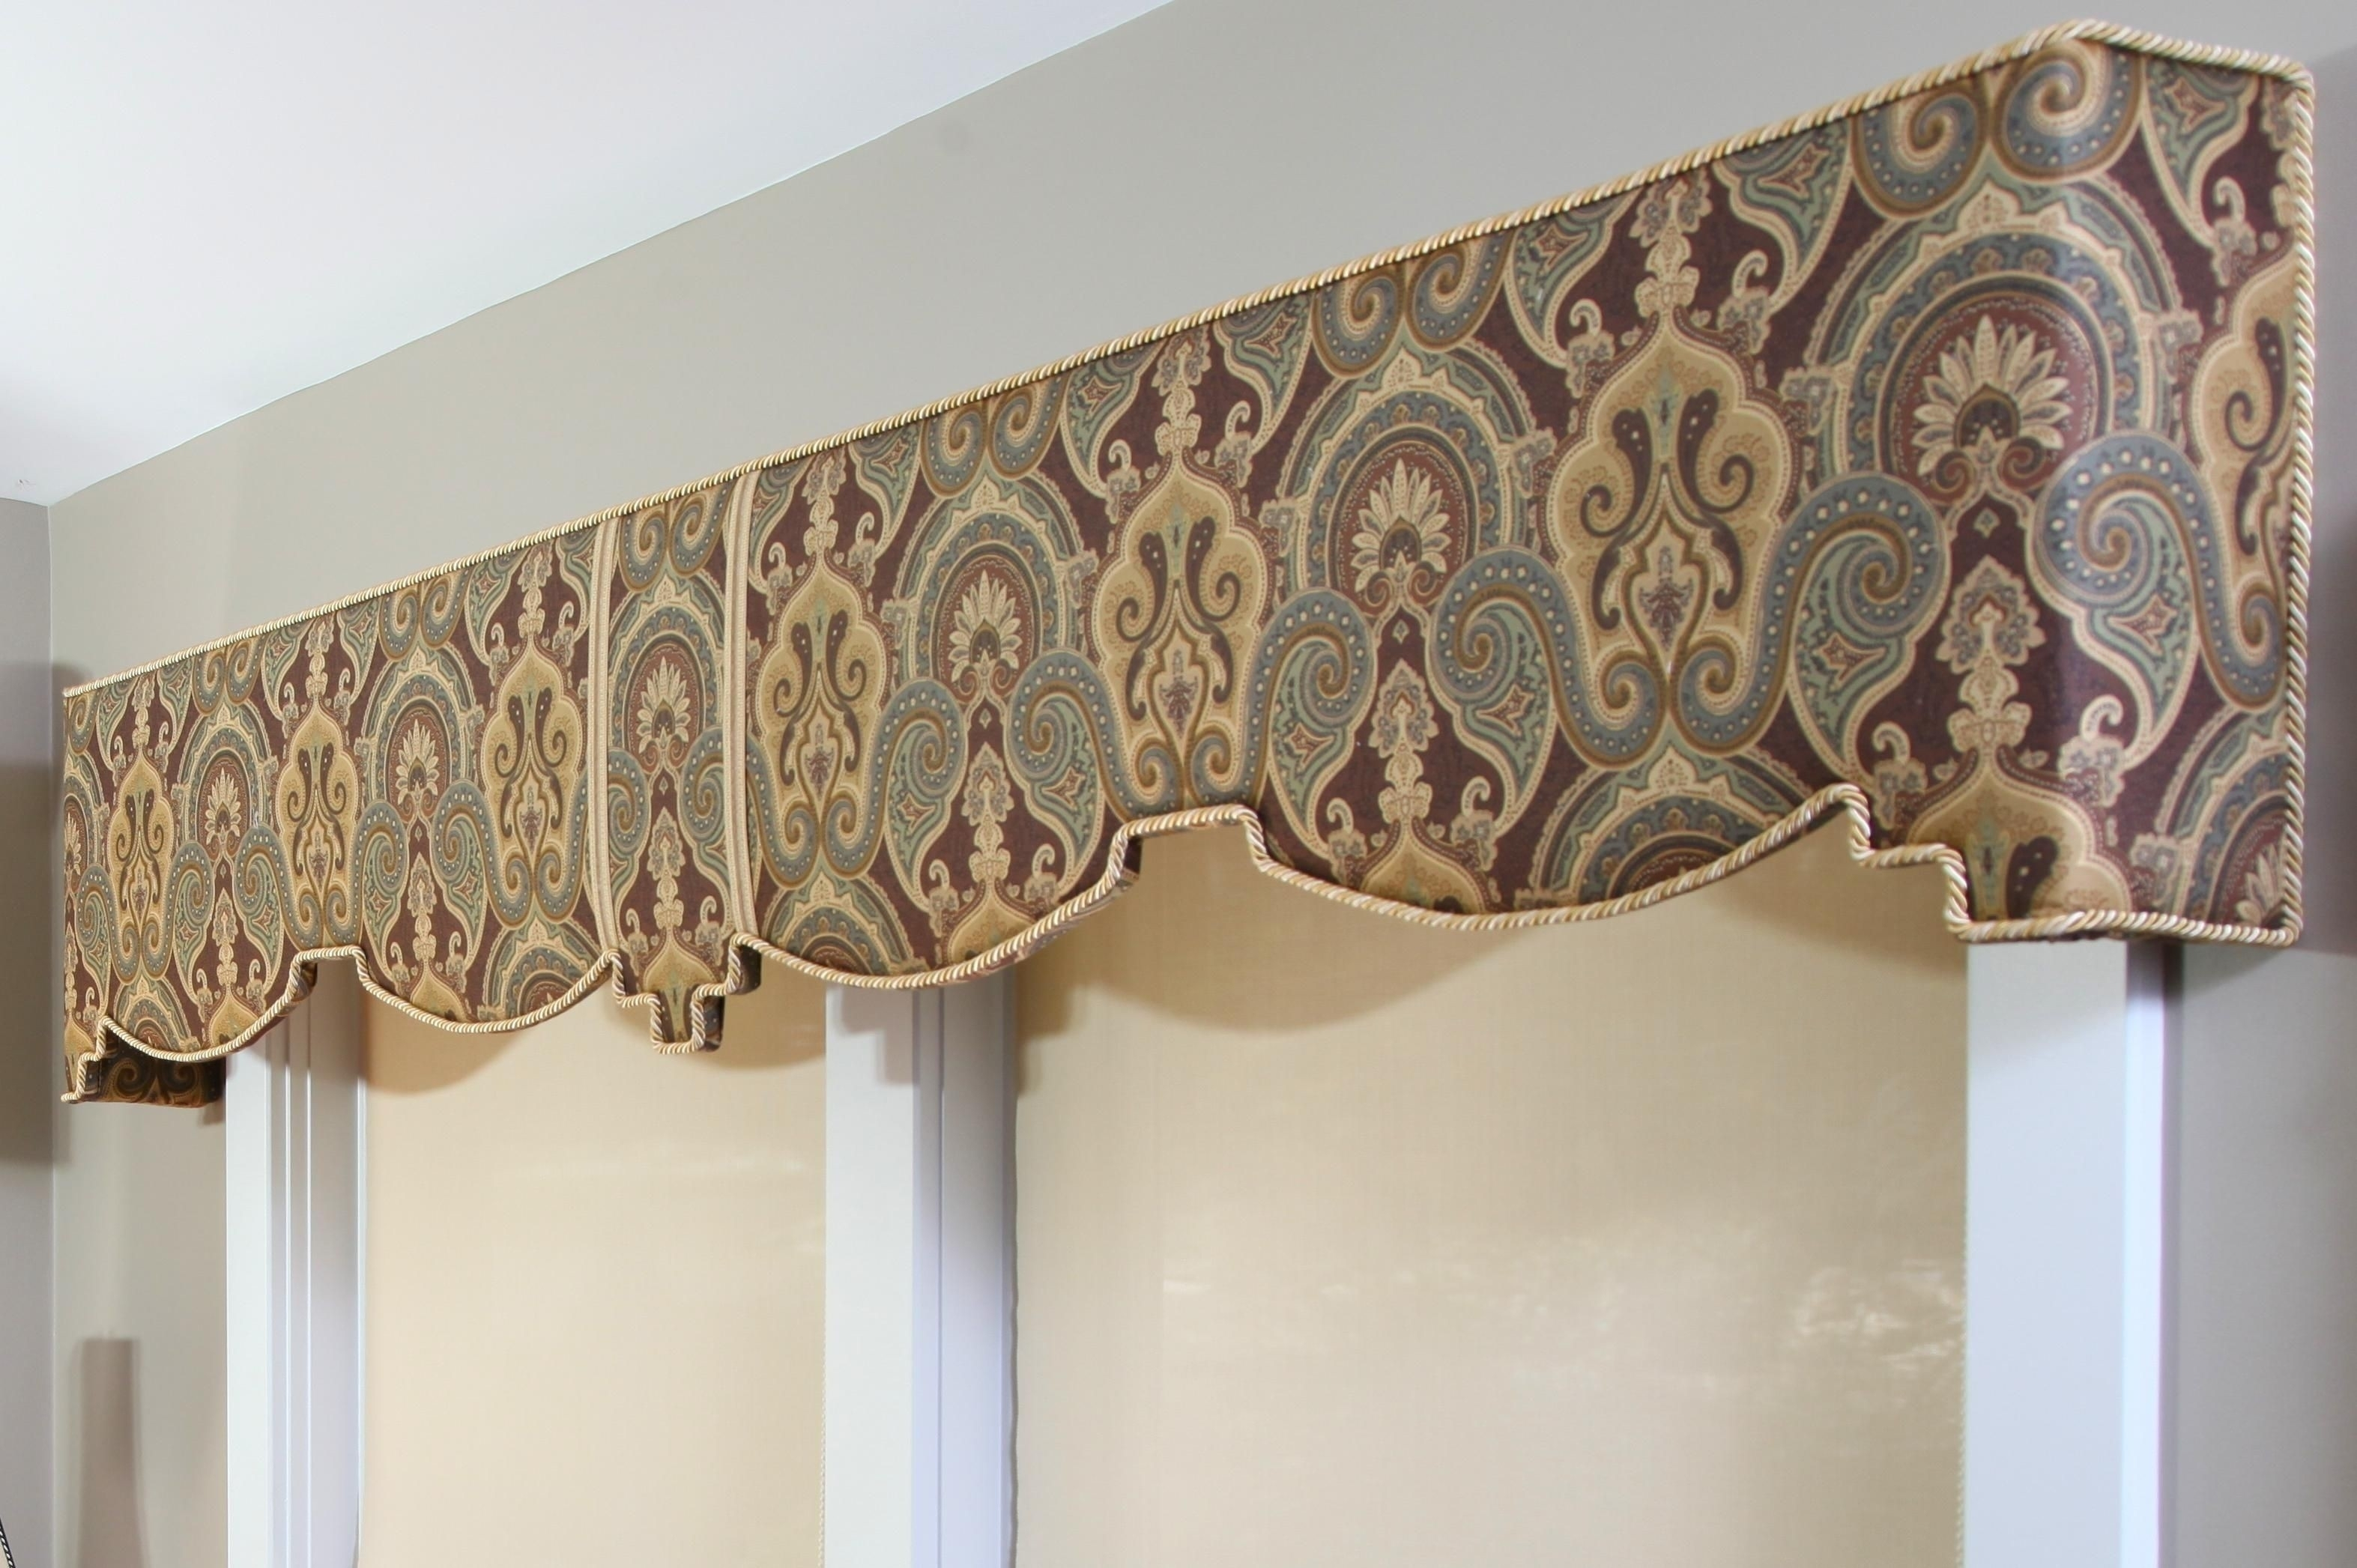 cornice window treatments fabric make your own cornice window treatments do it yourself madison art center design